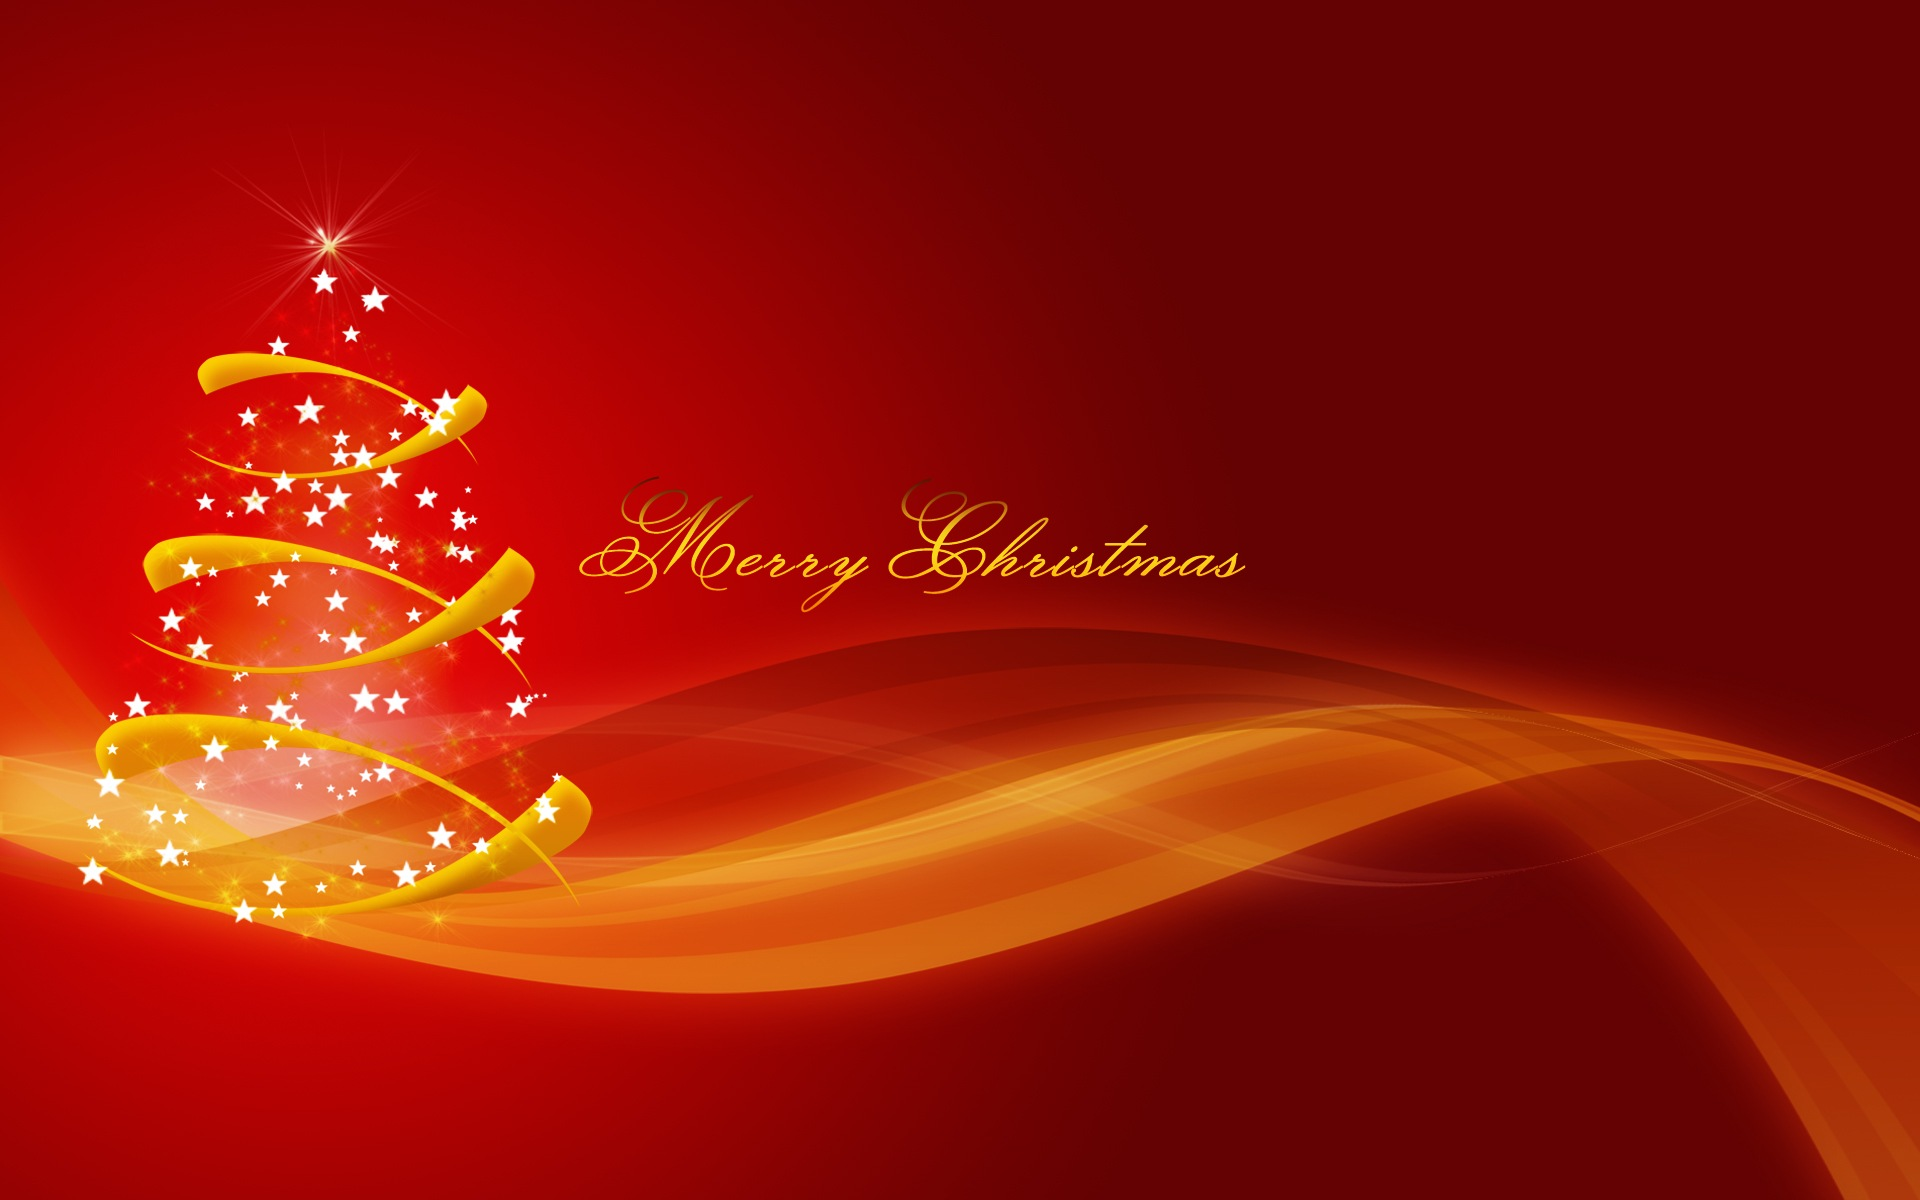 Merry Christmas Red Wallpaper 2014